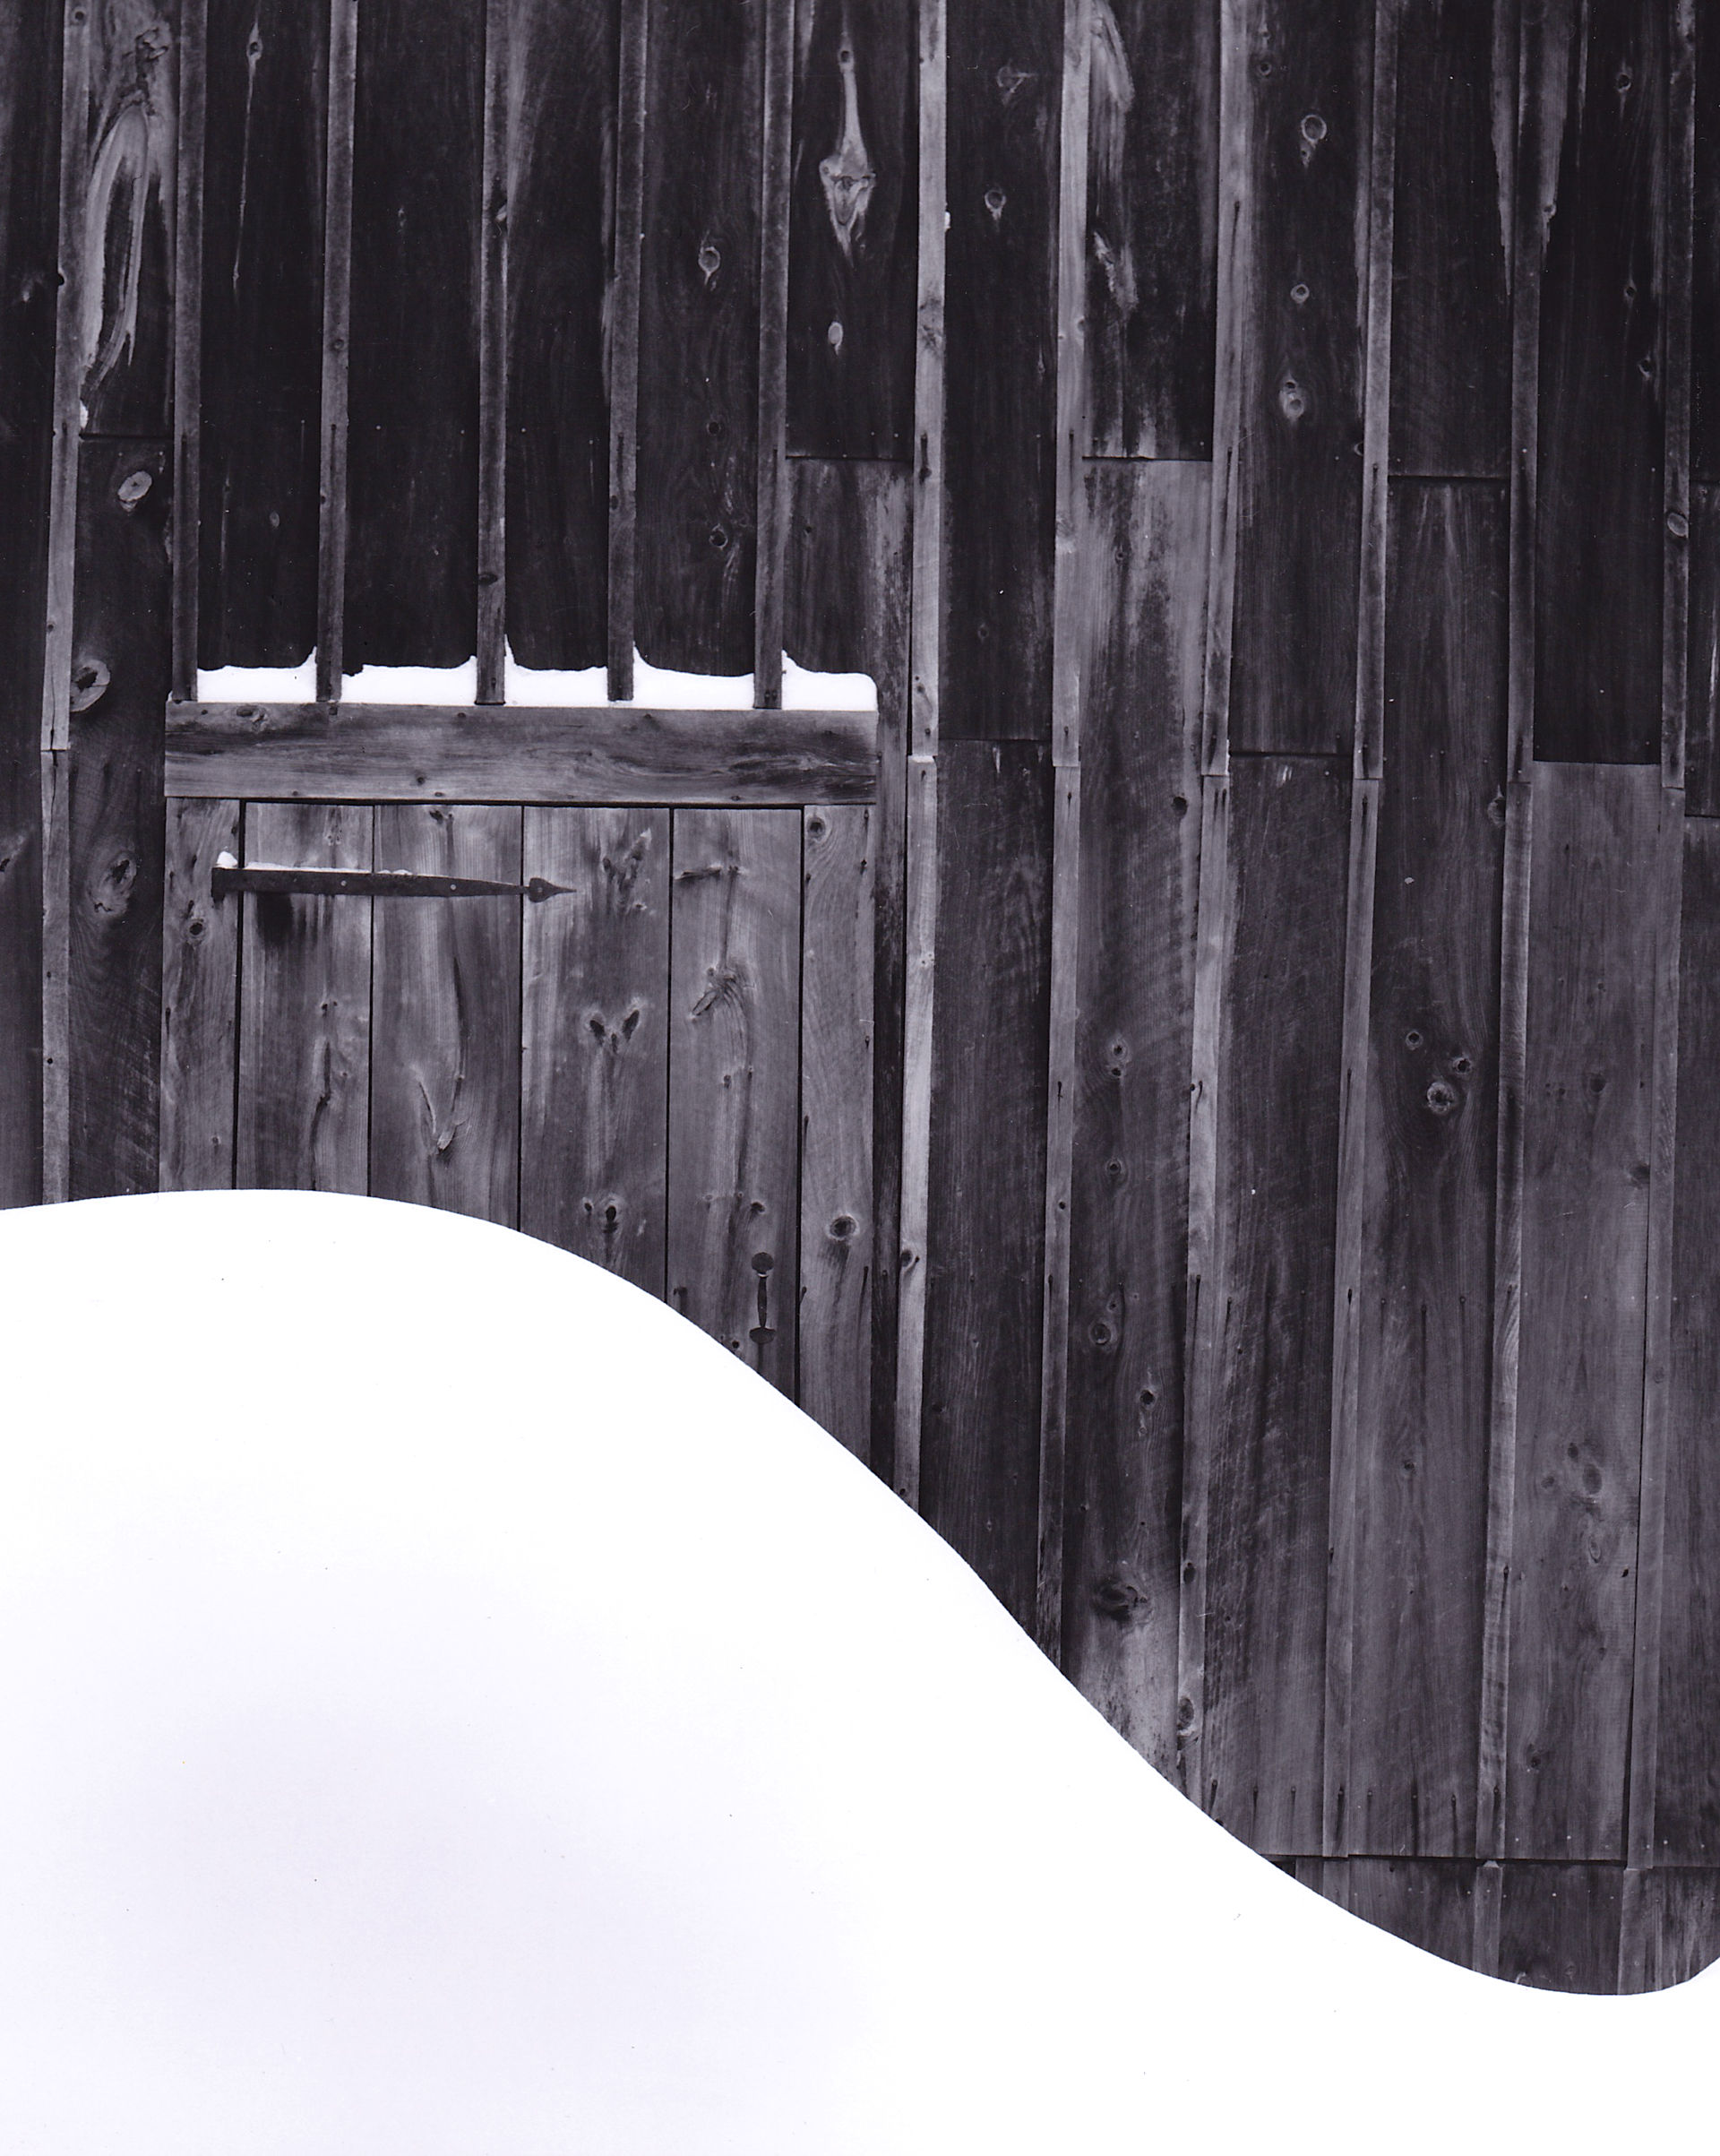 barn and snowdrift photograph